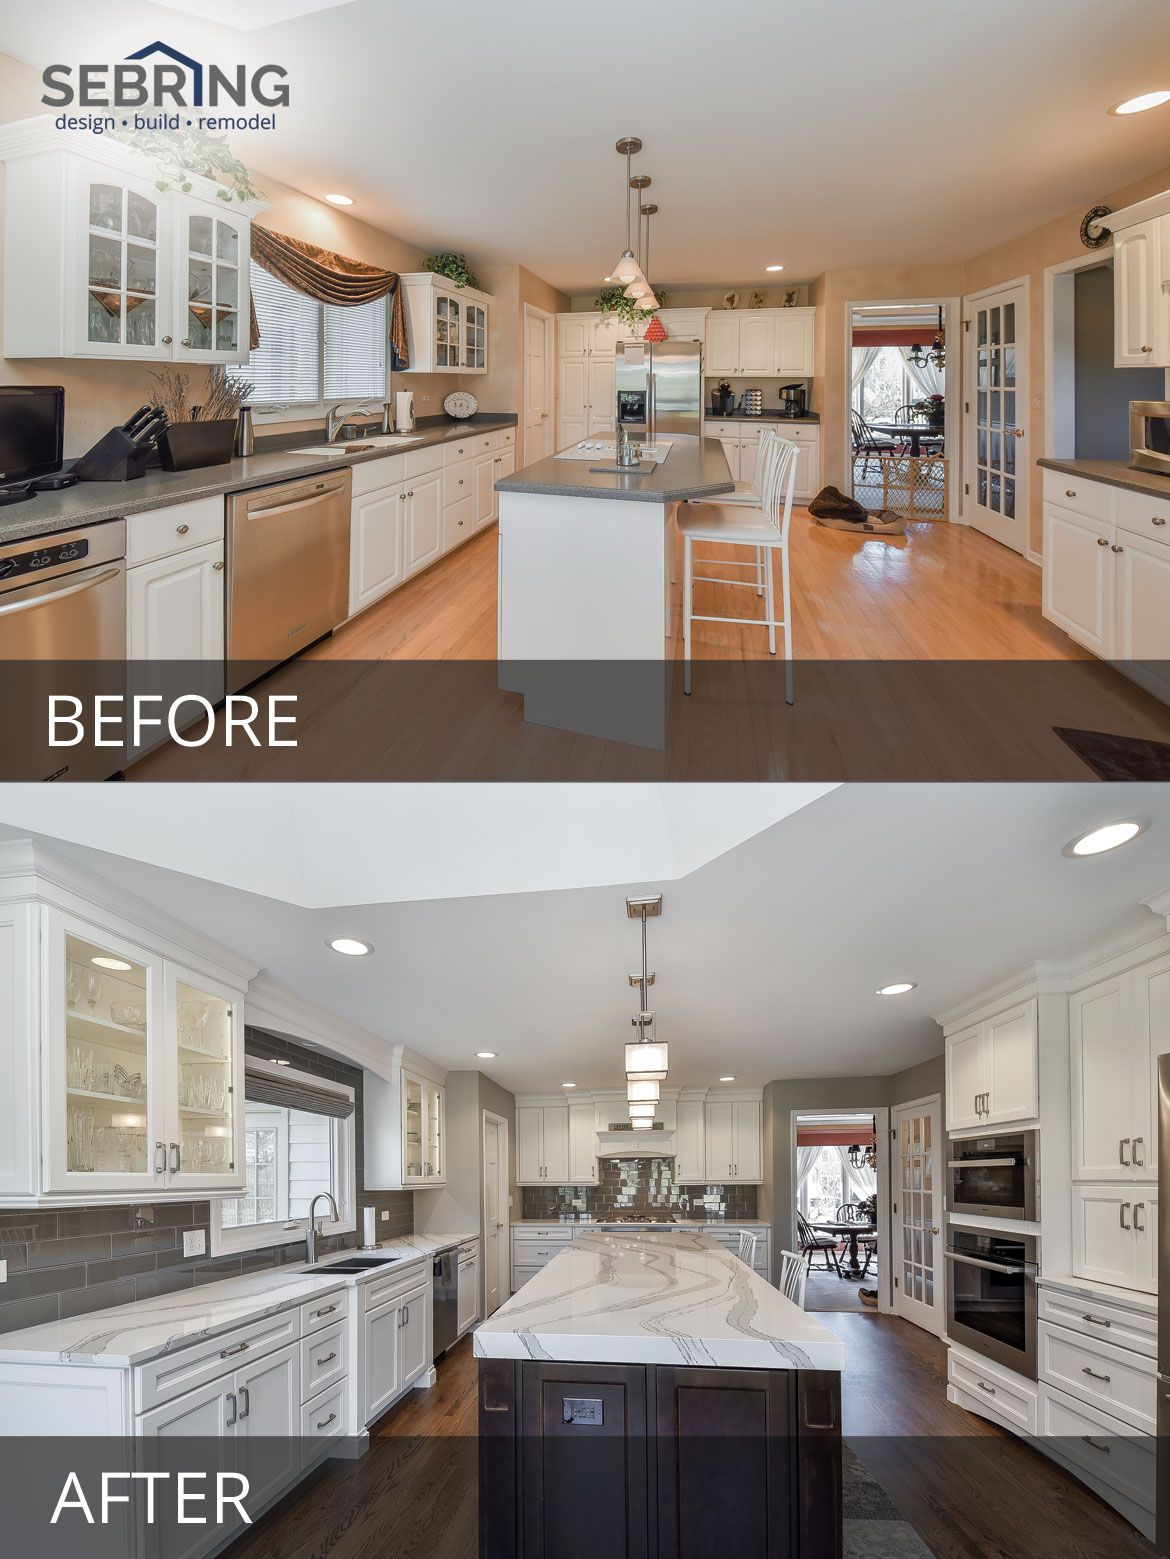 Kitchen Design Naperville French Country Curtains Dave Cathy S Before After Pictures In 2018 Decoration Remodeling And Sebring Build